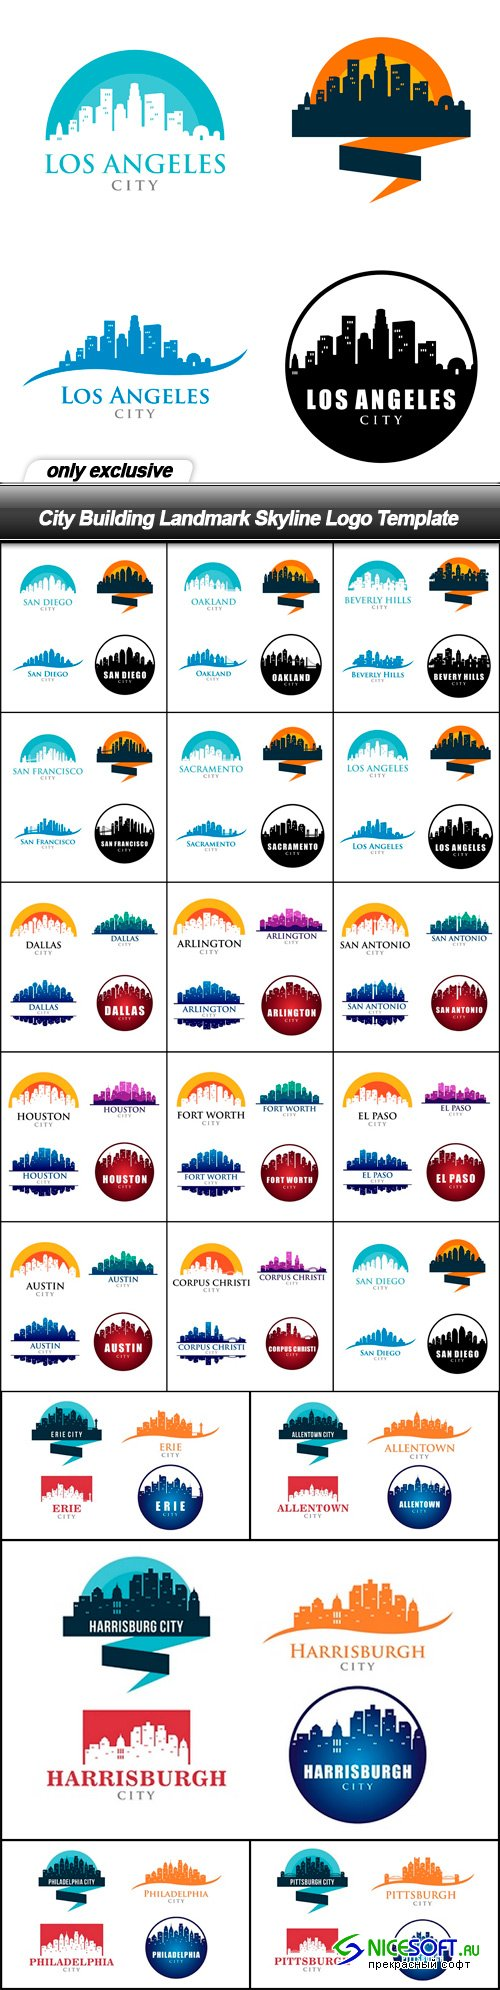 City Building Landmark Skyline Logo Template